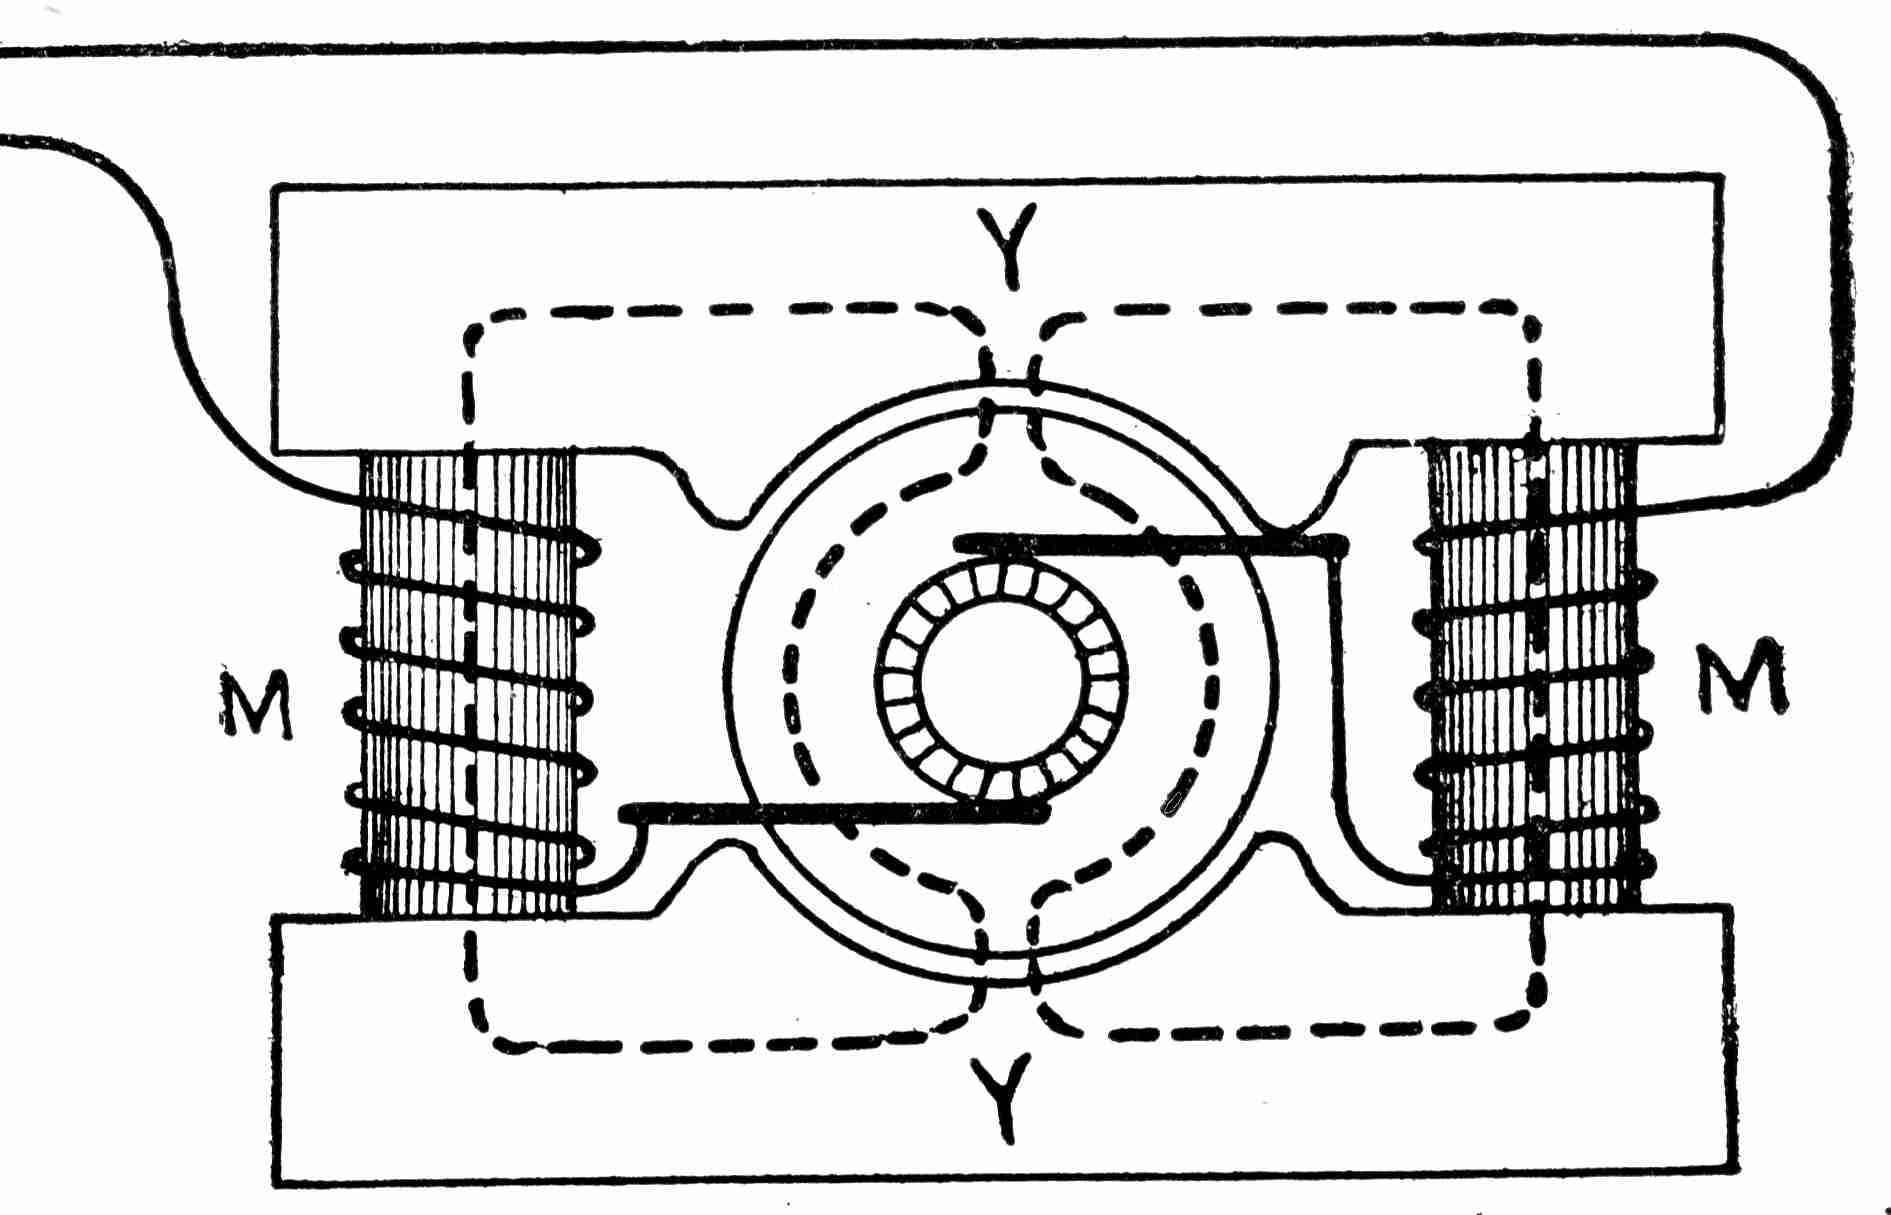 alternator winding diagram with File Consequent Pole Bipolar Series Field Dc Generator on Icar resourcecenter encyclopedia ignition together with Steele Generator Wiring Diagram additionally Marine Engineering Self Examiner additionally File Hawkins Electrical Guide   3phase Elementary 6wire furthermore Bronco.